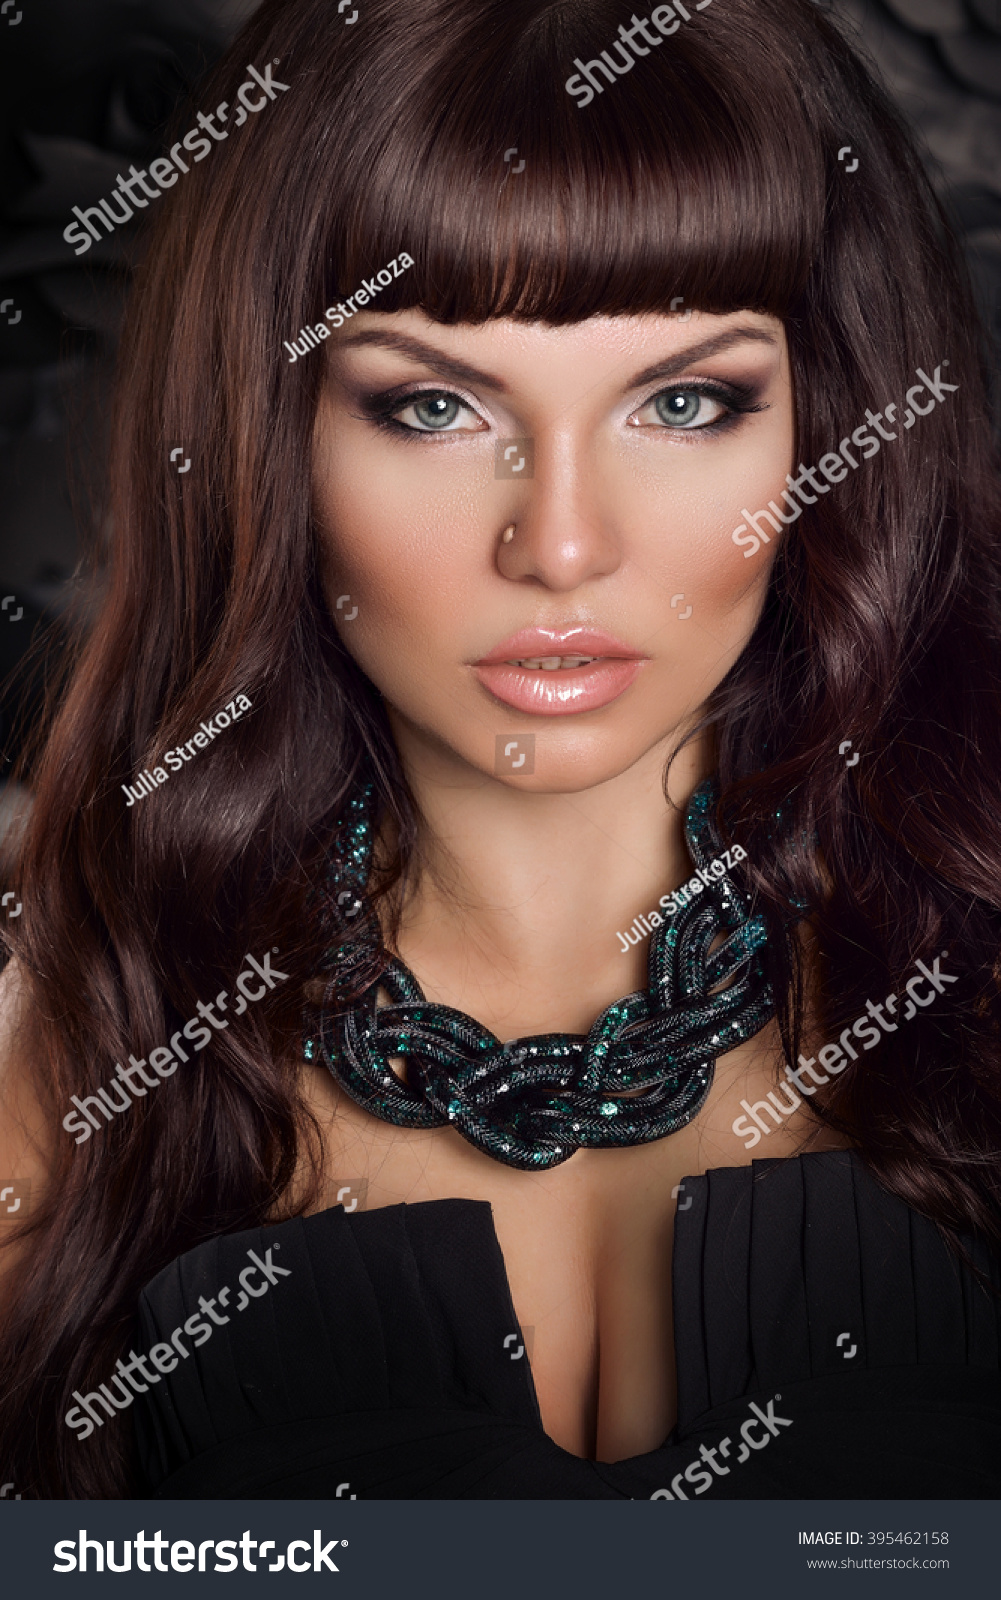 Fashion Studio Portrait Of Beautiful Young Woman With Long Dark Hair